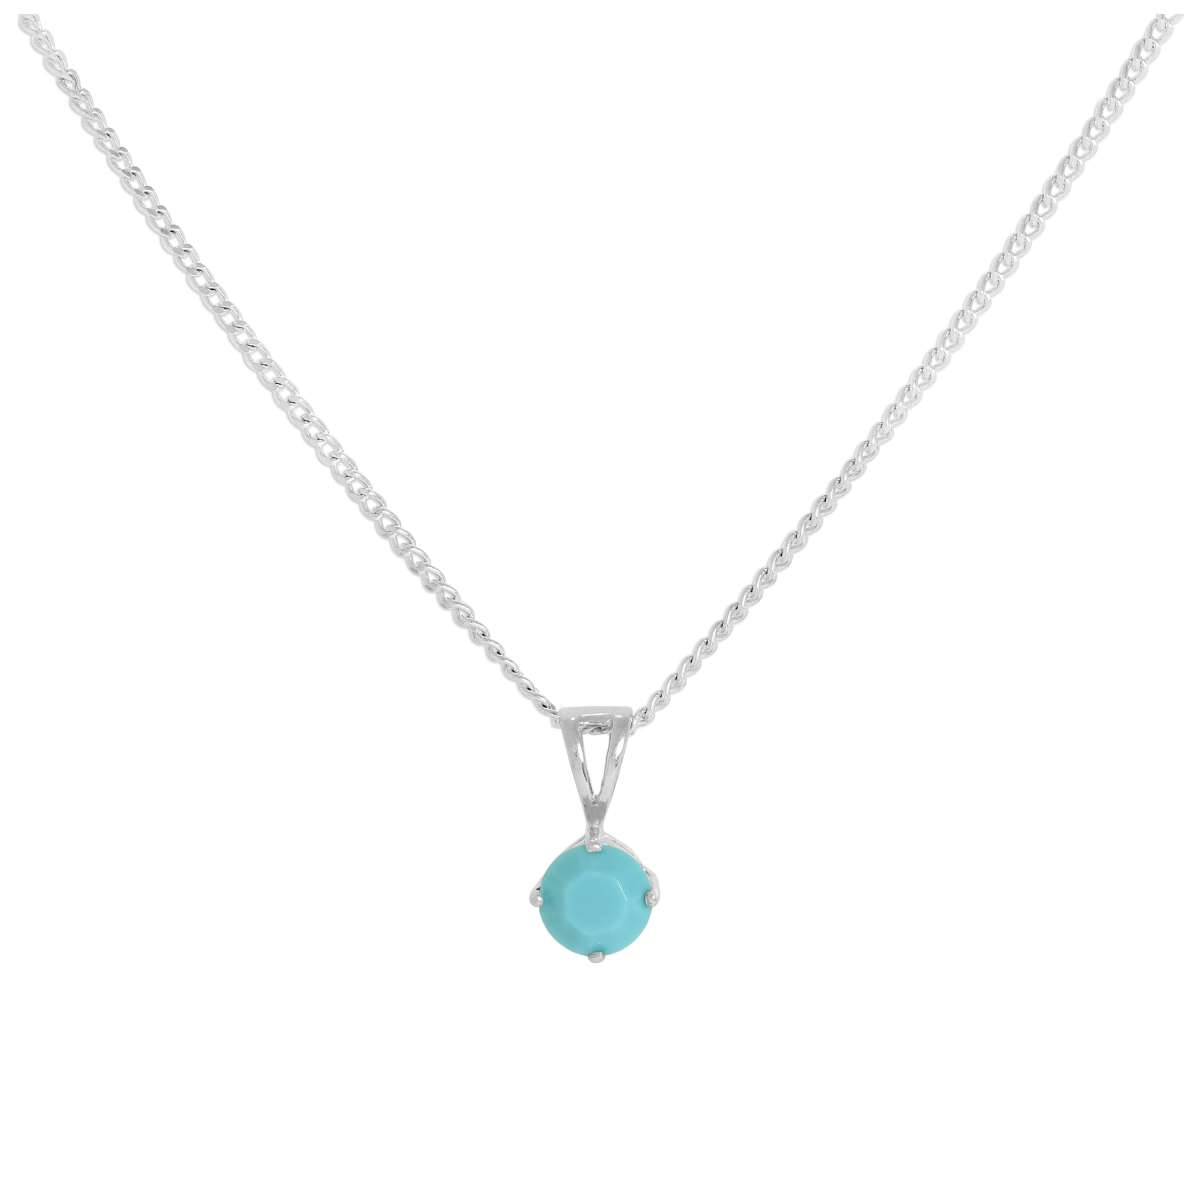 Sterling Silver & Turquoise Crystal Made With Swarovski Elements December Birthstone Pendant Necklace 16 – 24 Inches | Jewellerybox.co (View 6 of 25)